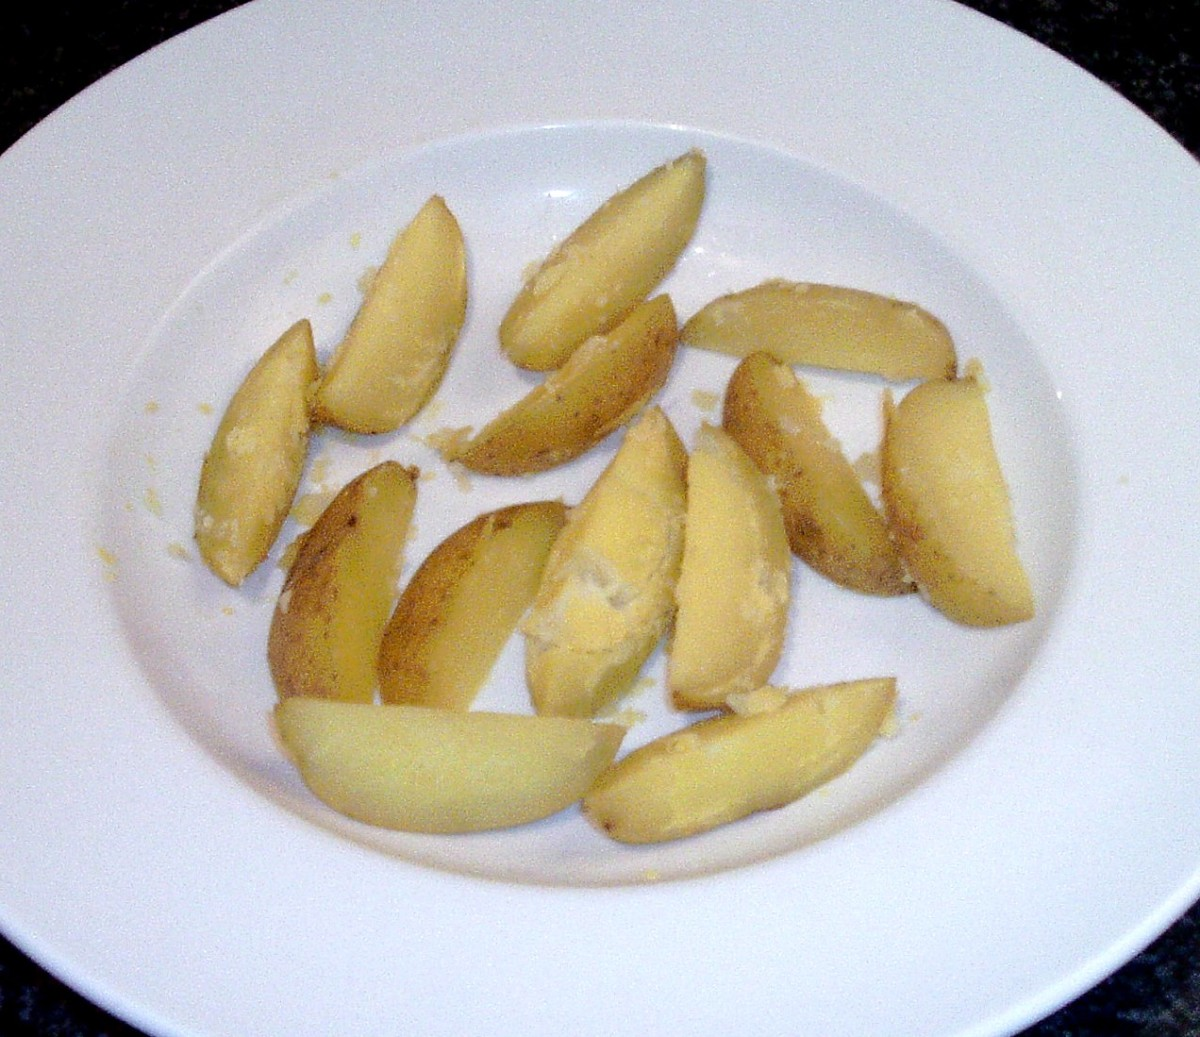 Boiled spicy wedges